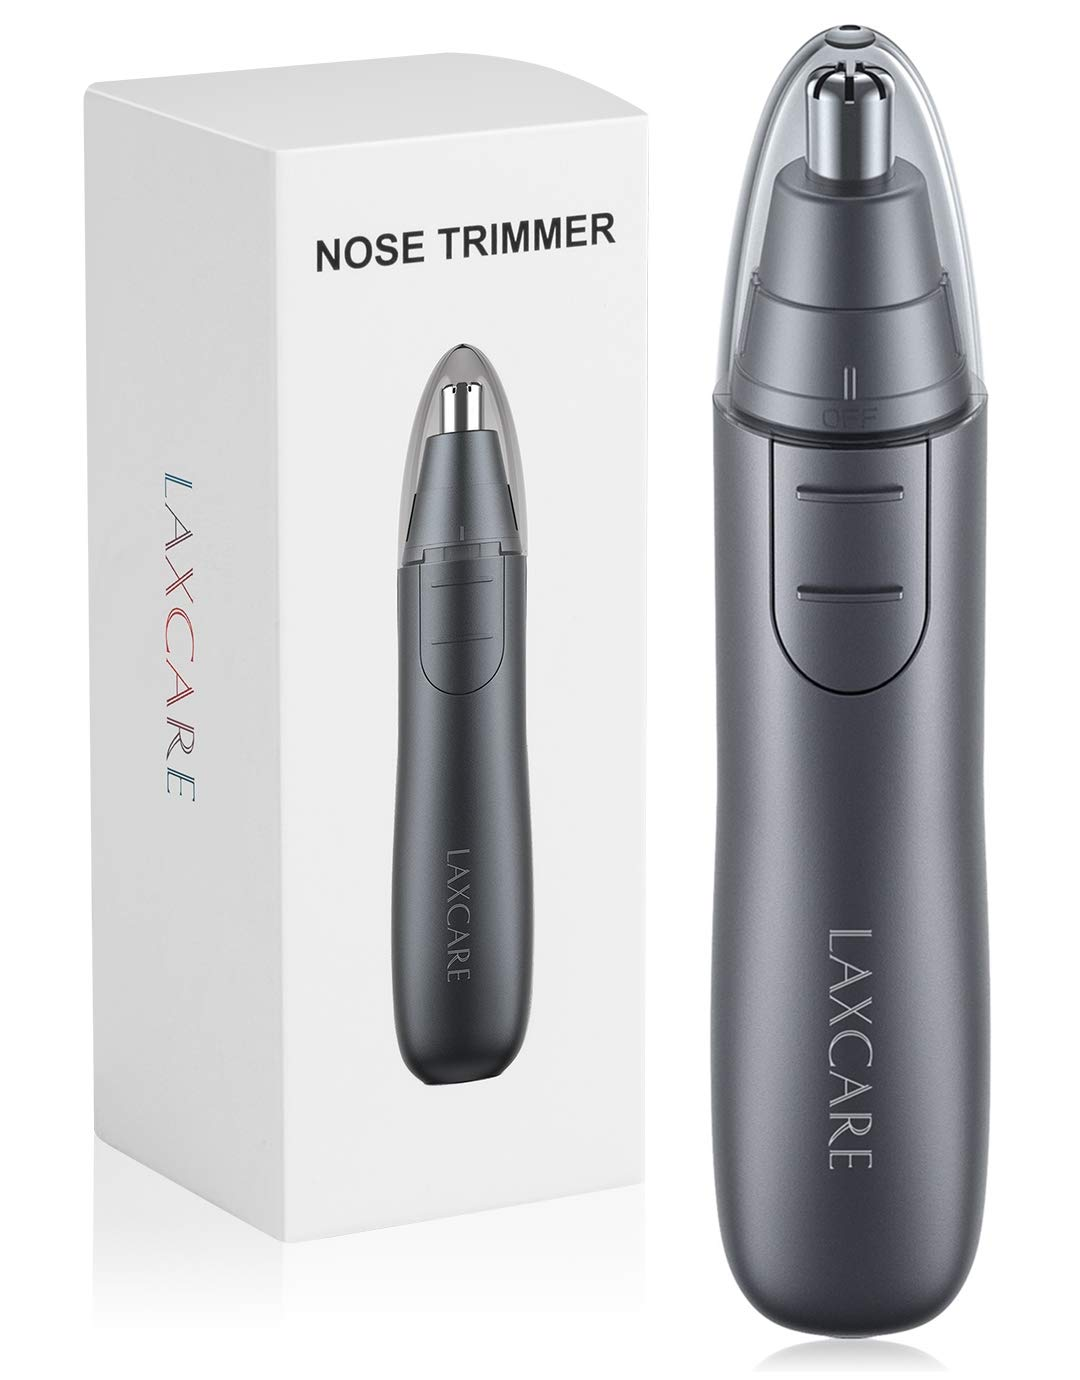 Nose and hair trimmer